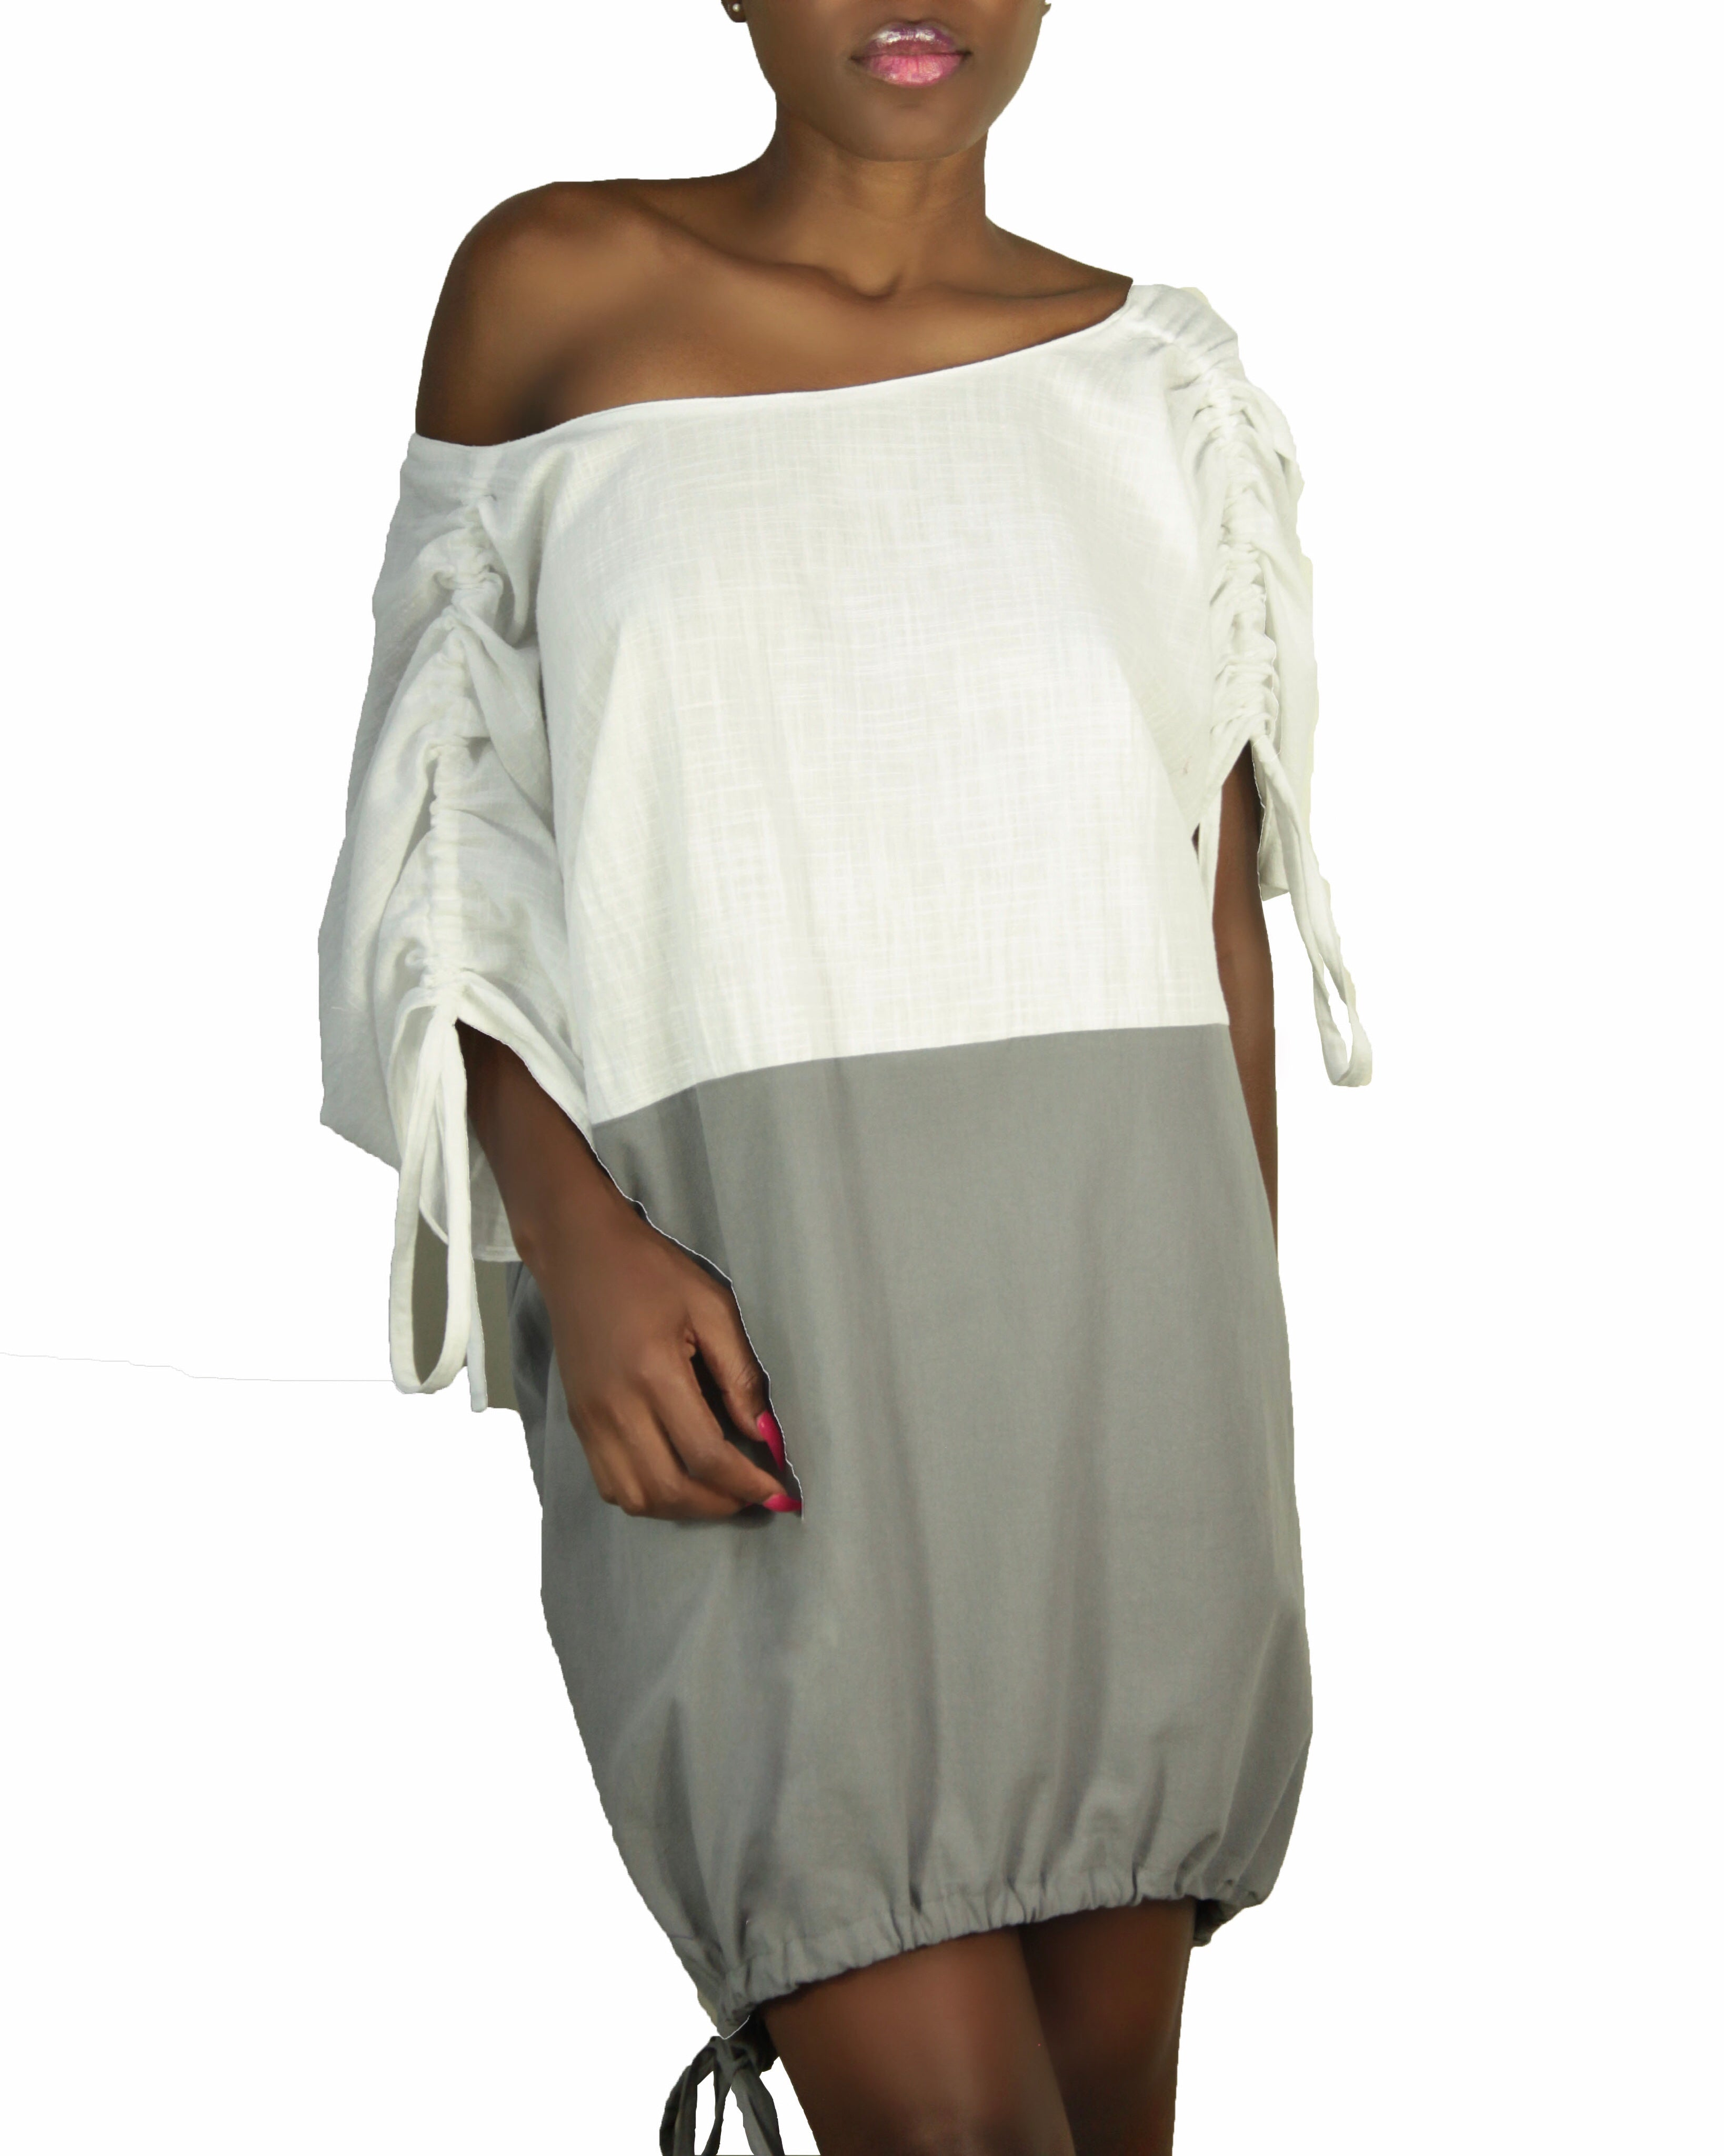 Keneea Linton Gray and White Parachute Dress